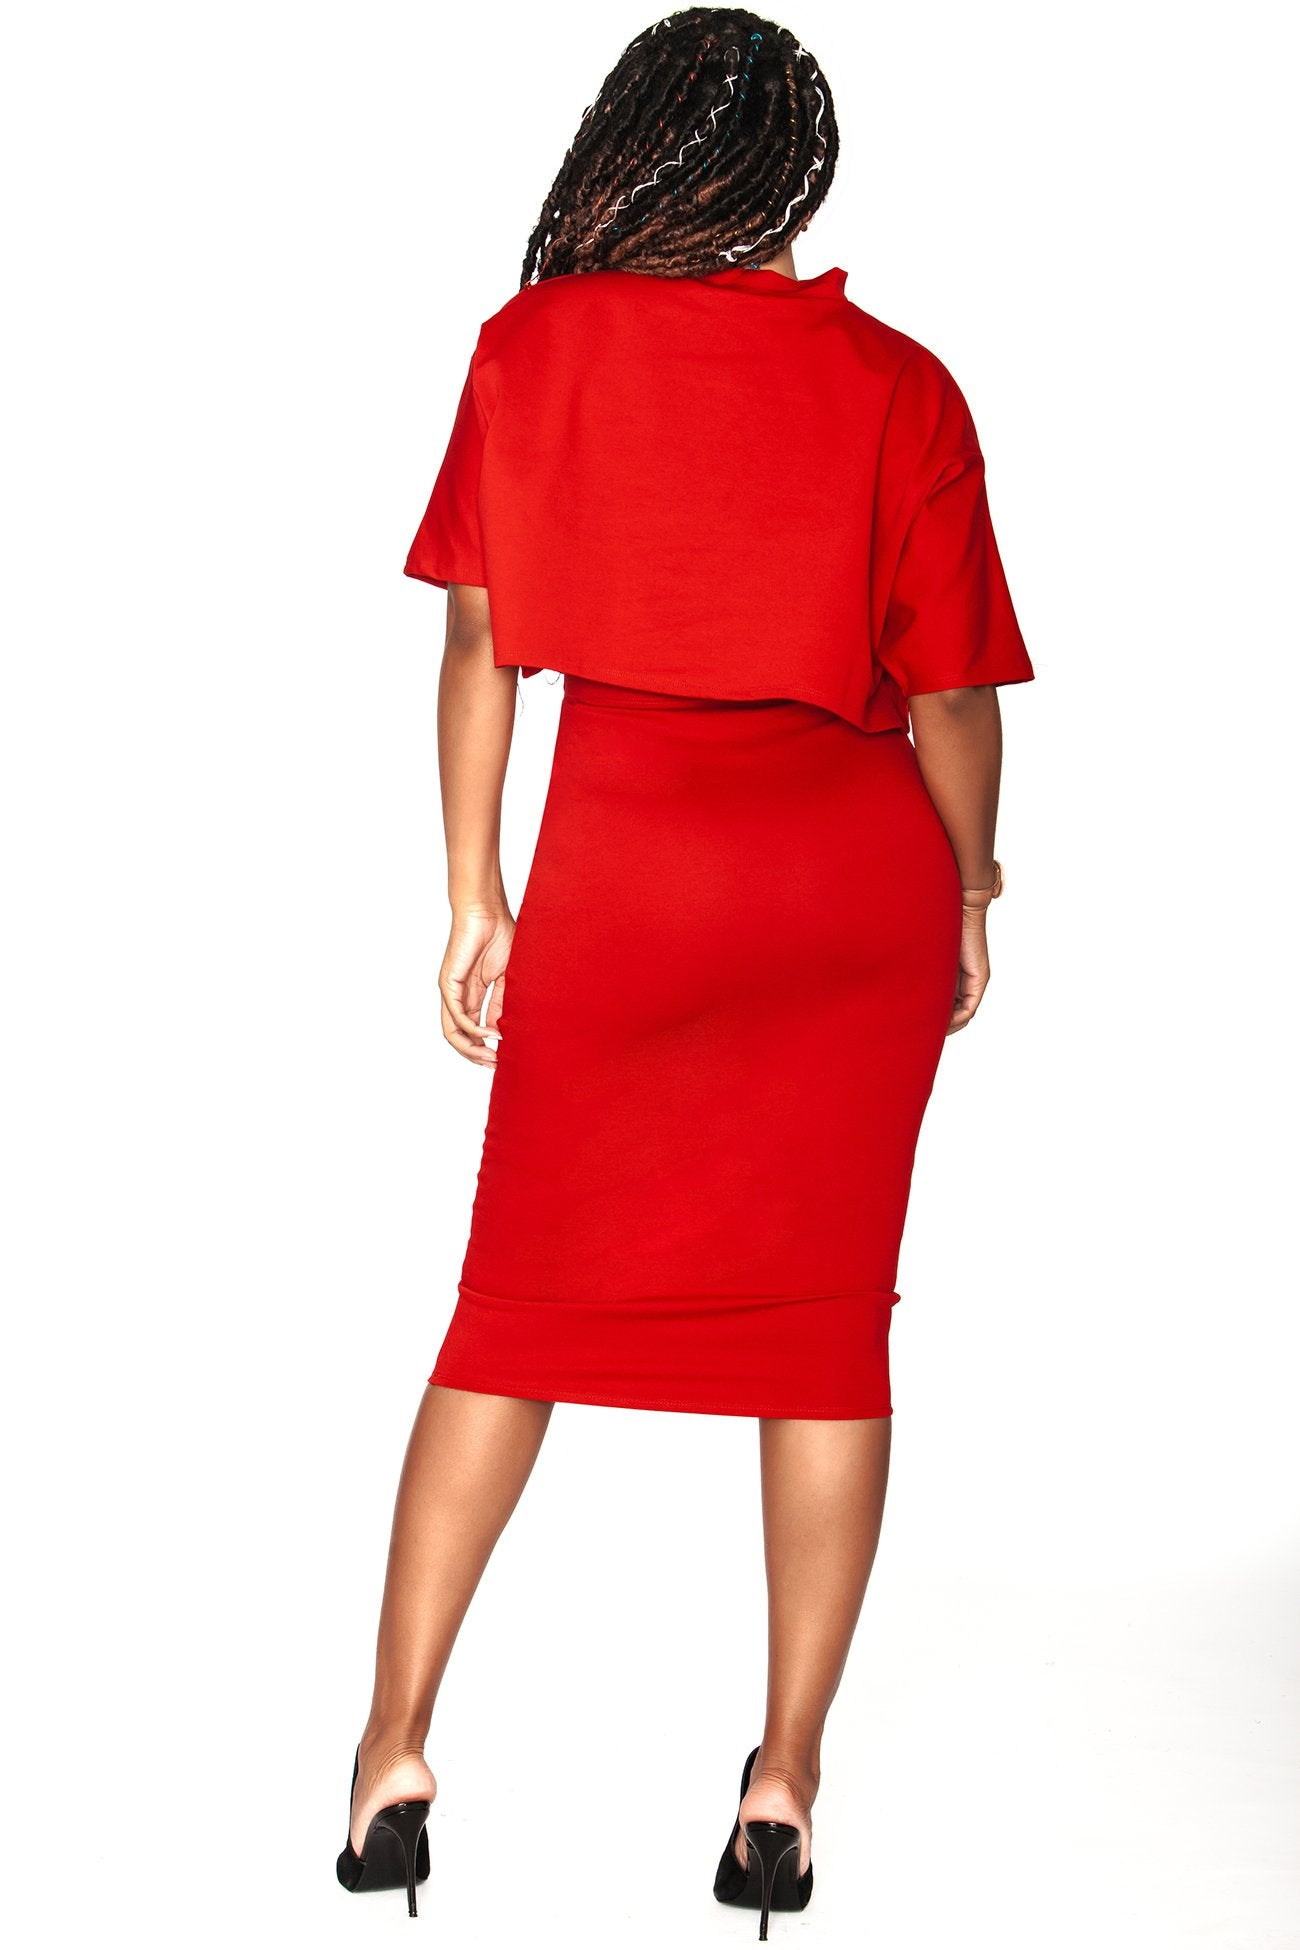 Raven Skirt - Passion Red